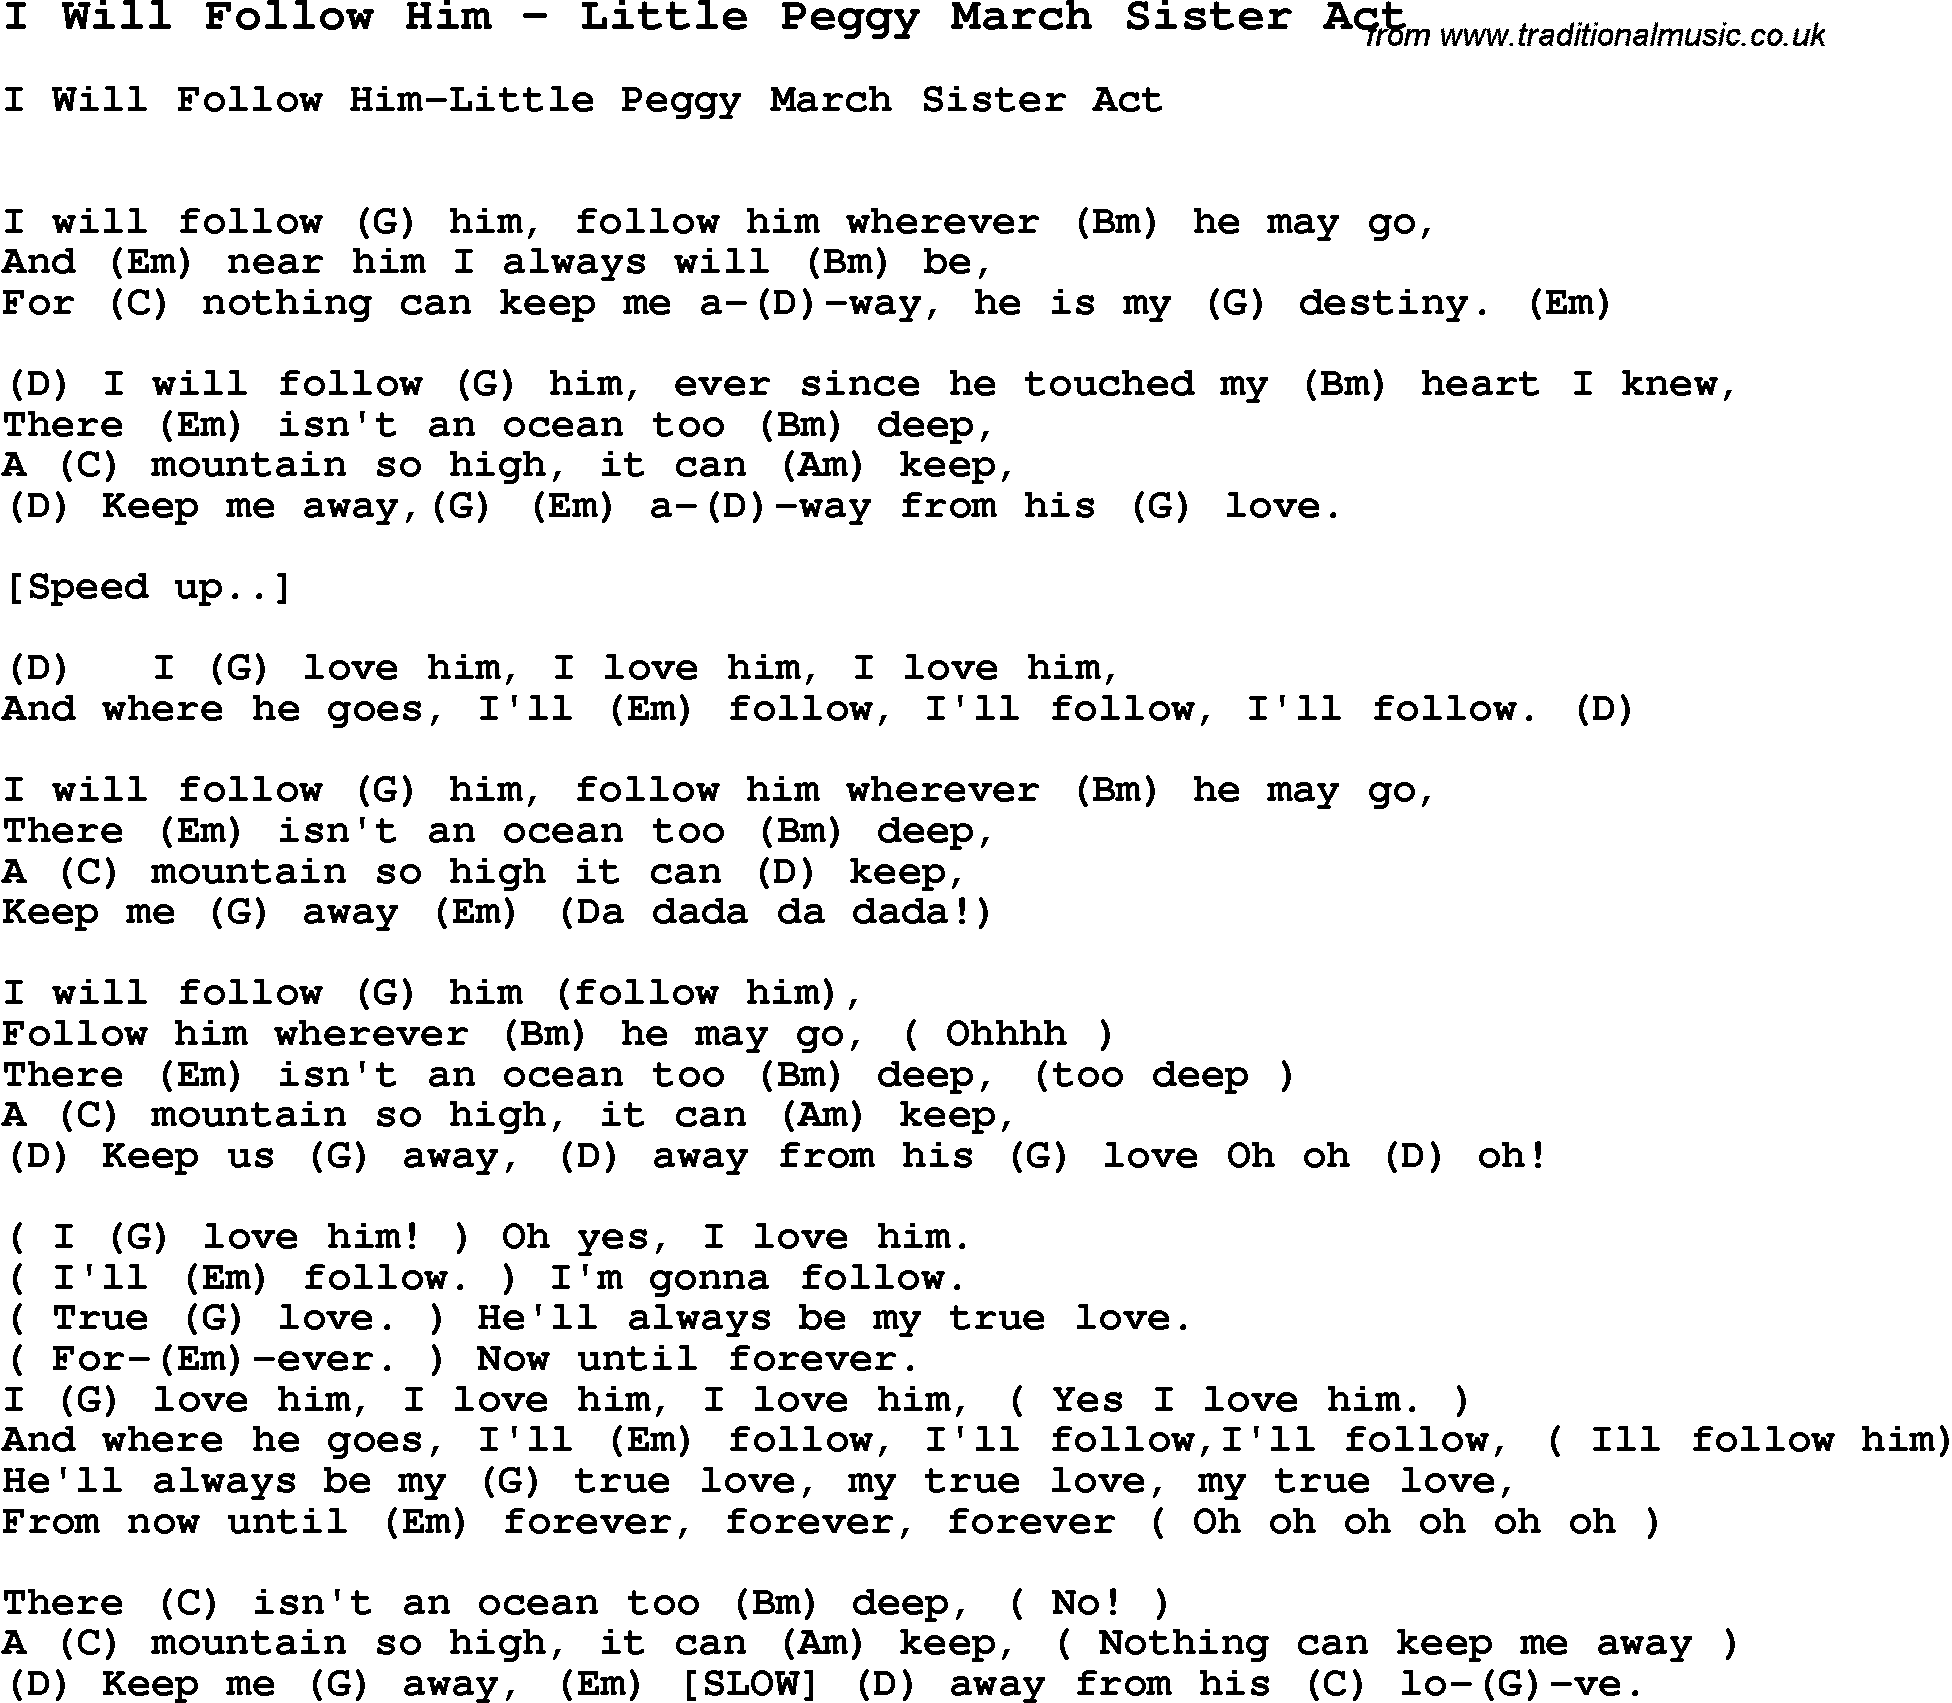 Song I Will Follow Him By Little Peggy March Sister Act With Lyrics